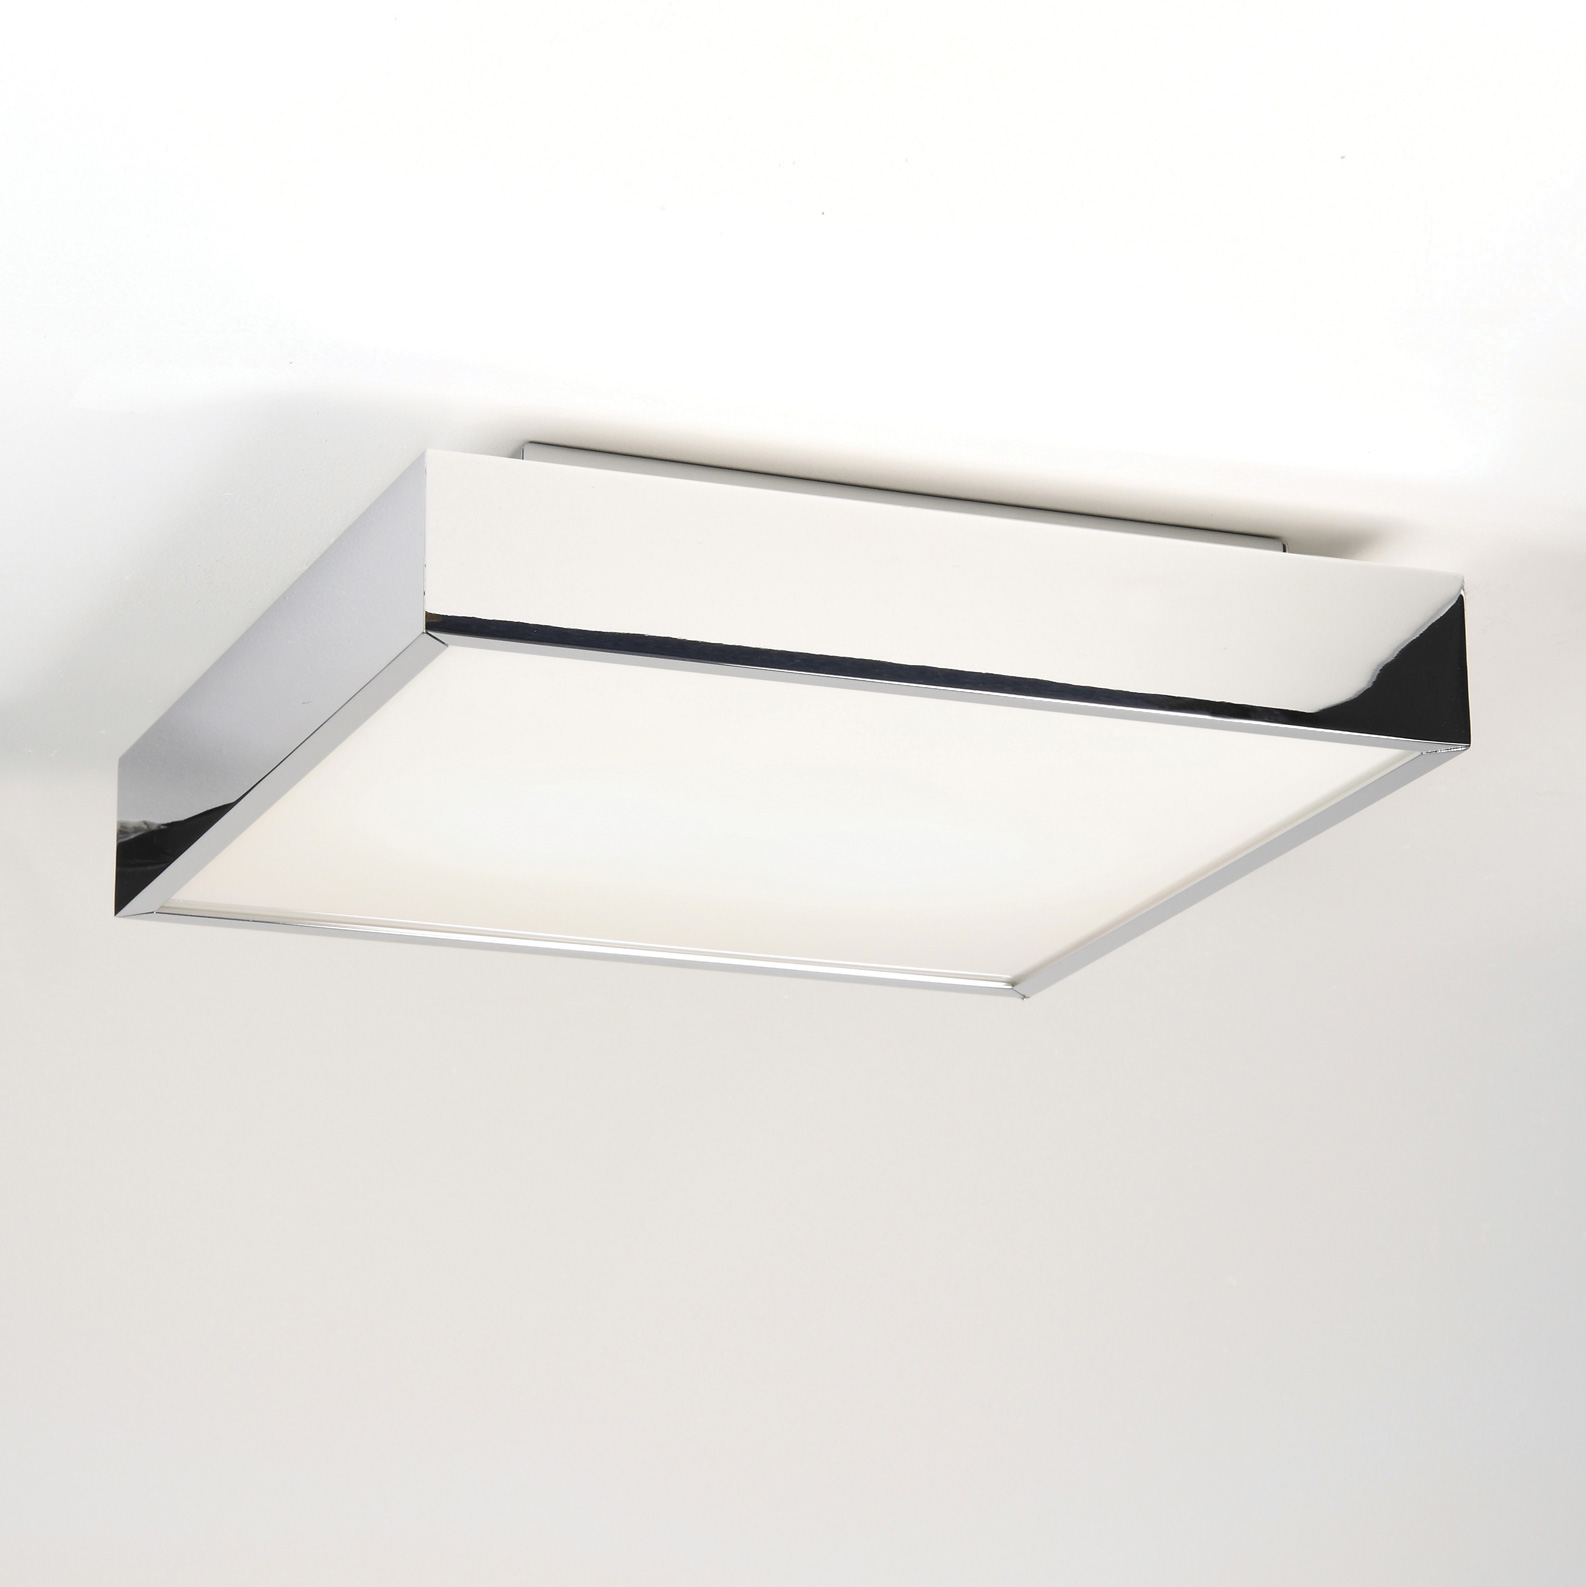 Astro Taketa LED square bathroom ceiling light 16W polished chrome IP44